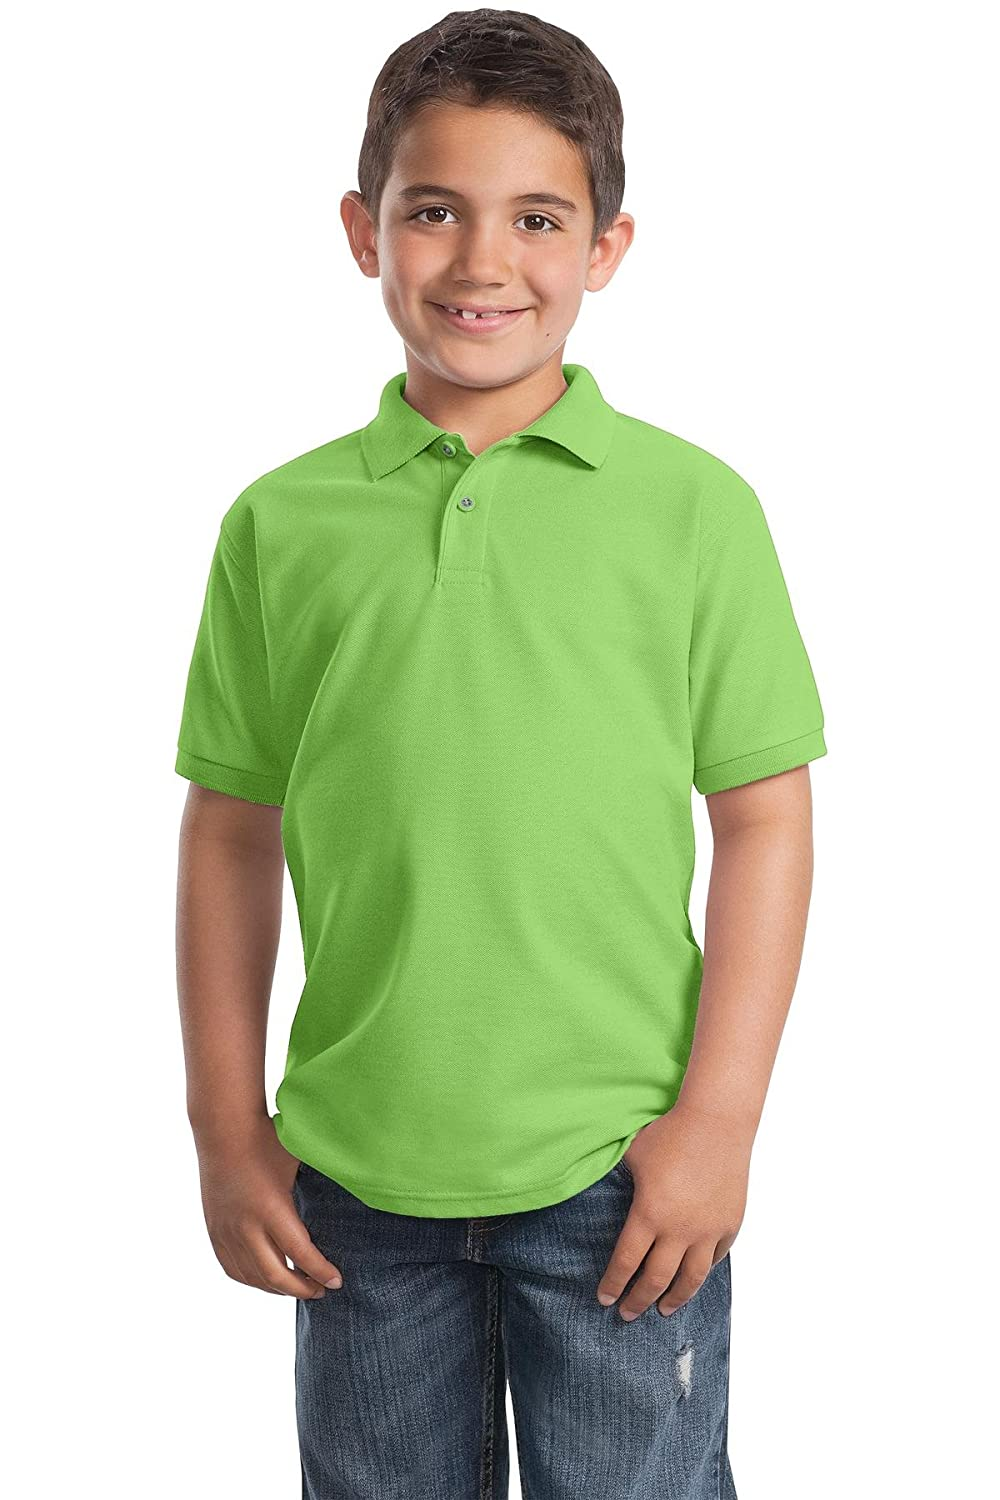 Y500 Lime L Port Authority Youth Silk Touch Polo